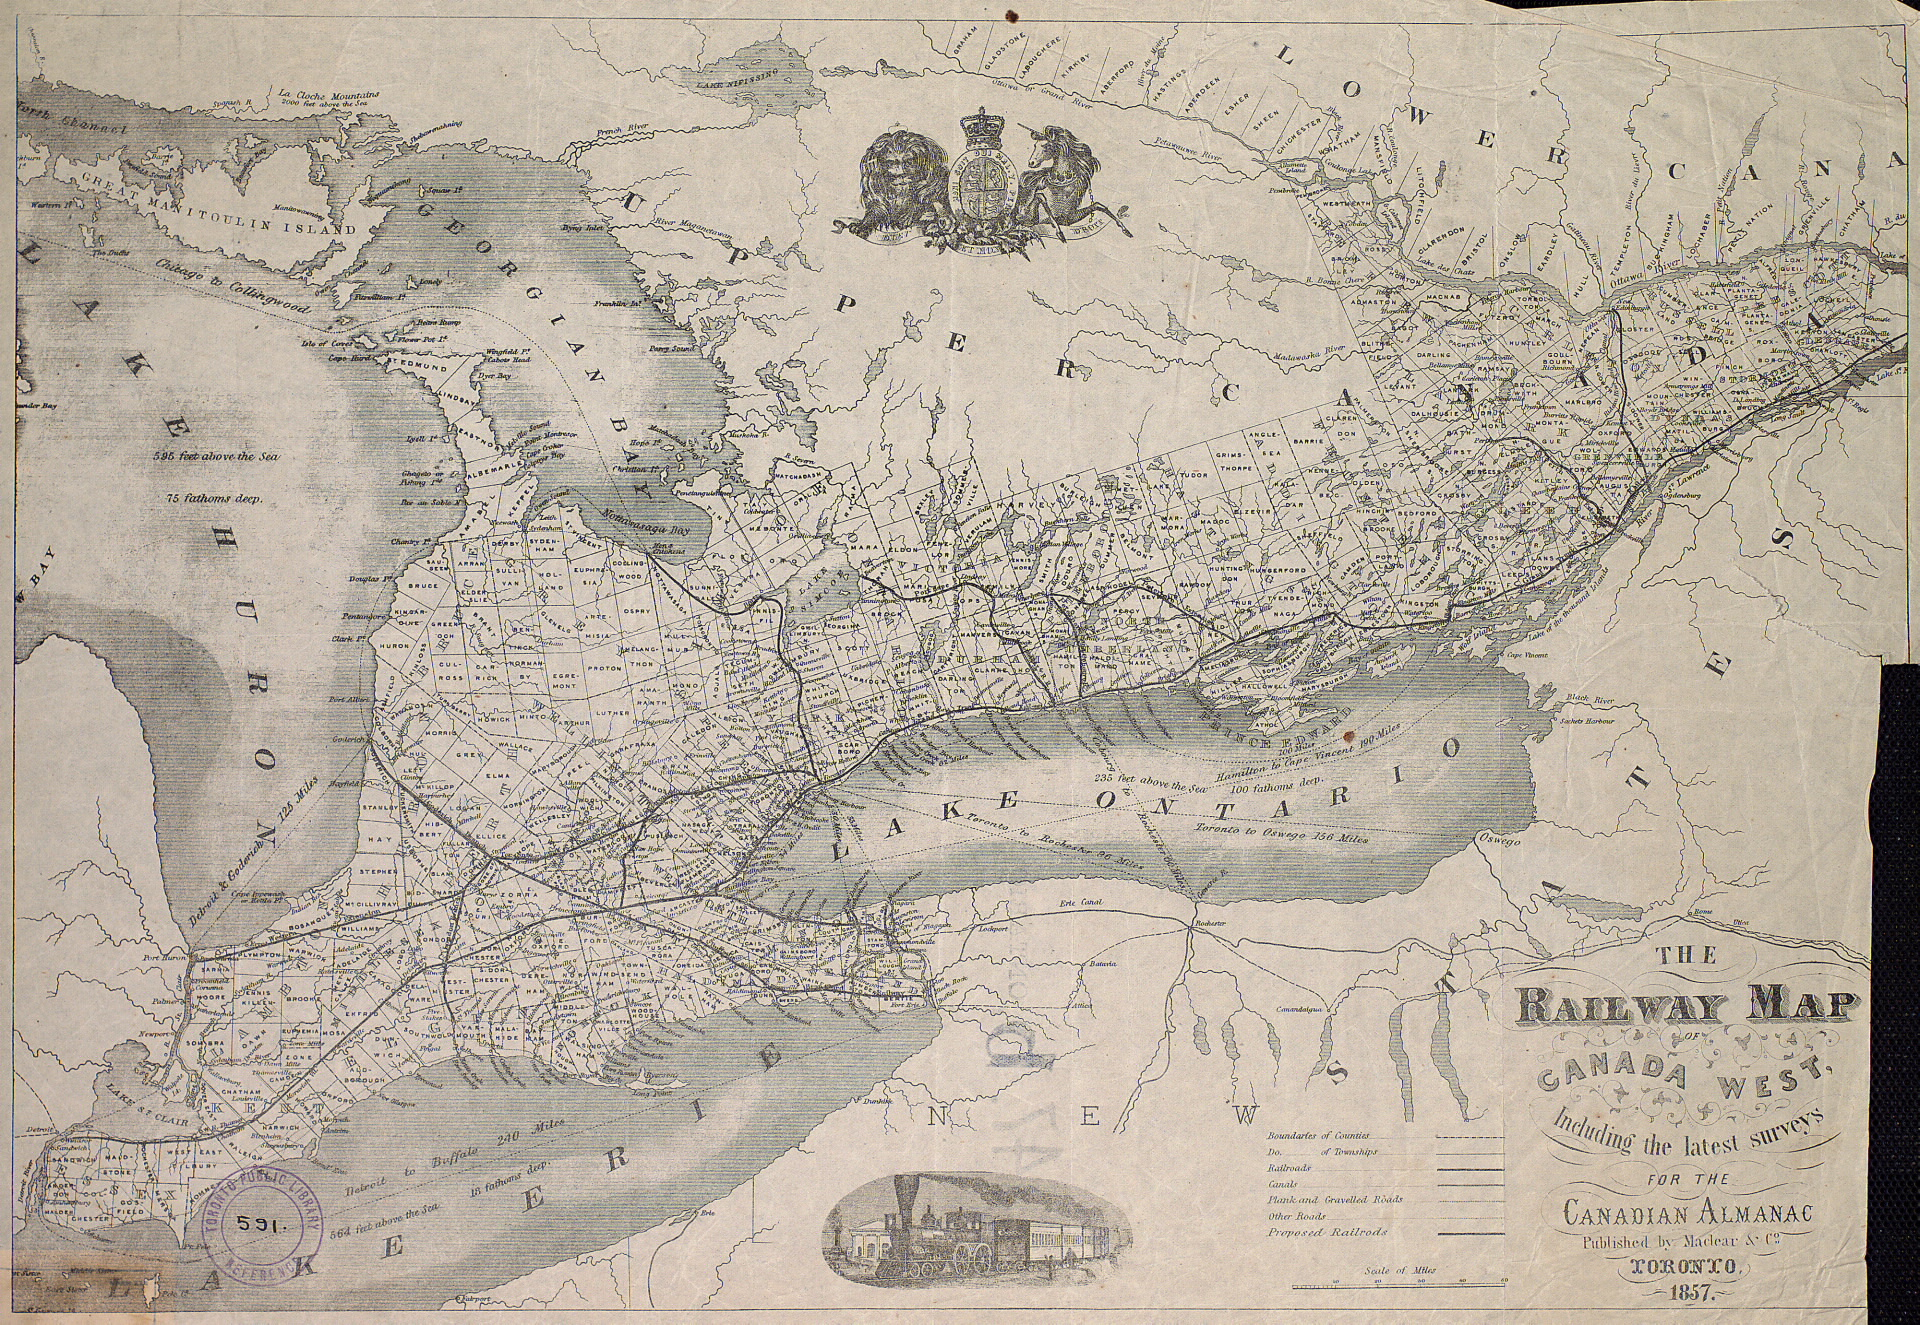 File The railway map of Canada West including the latest surveys for     File The railway map of Canada West including the latest surveys for the  Canadian almanac